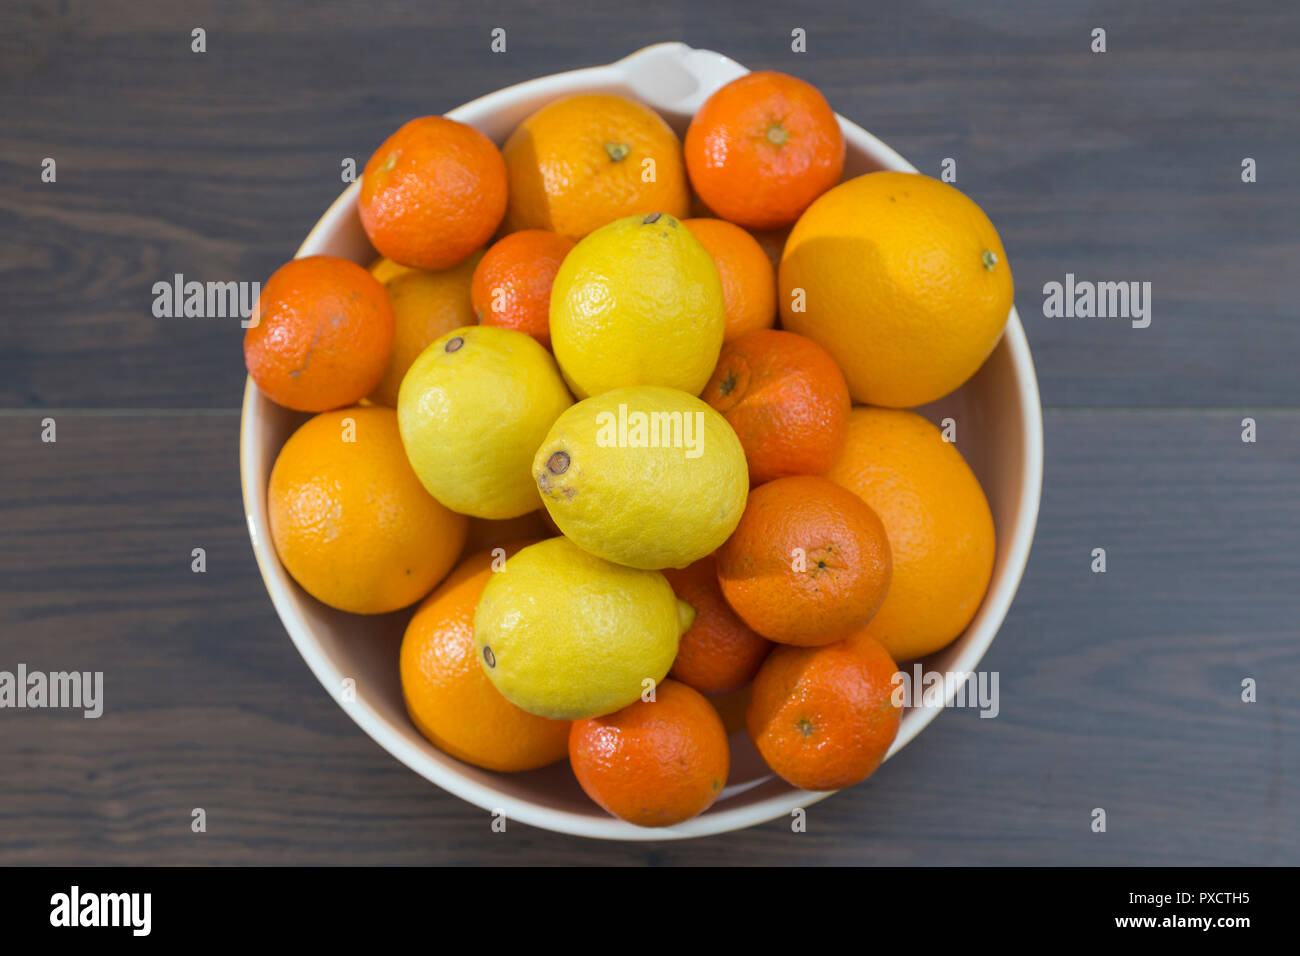 top view of a fruit bowl with oranges, tangerines and lemons, Mediterranean citrus, on a dark background in brown tones - Stock Image